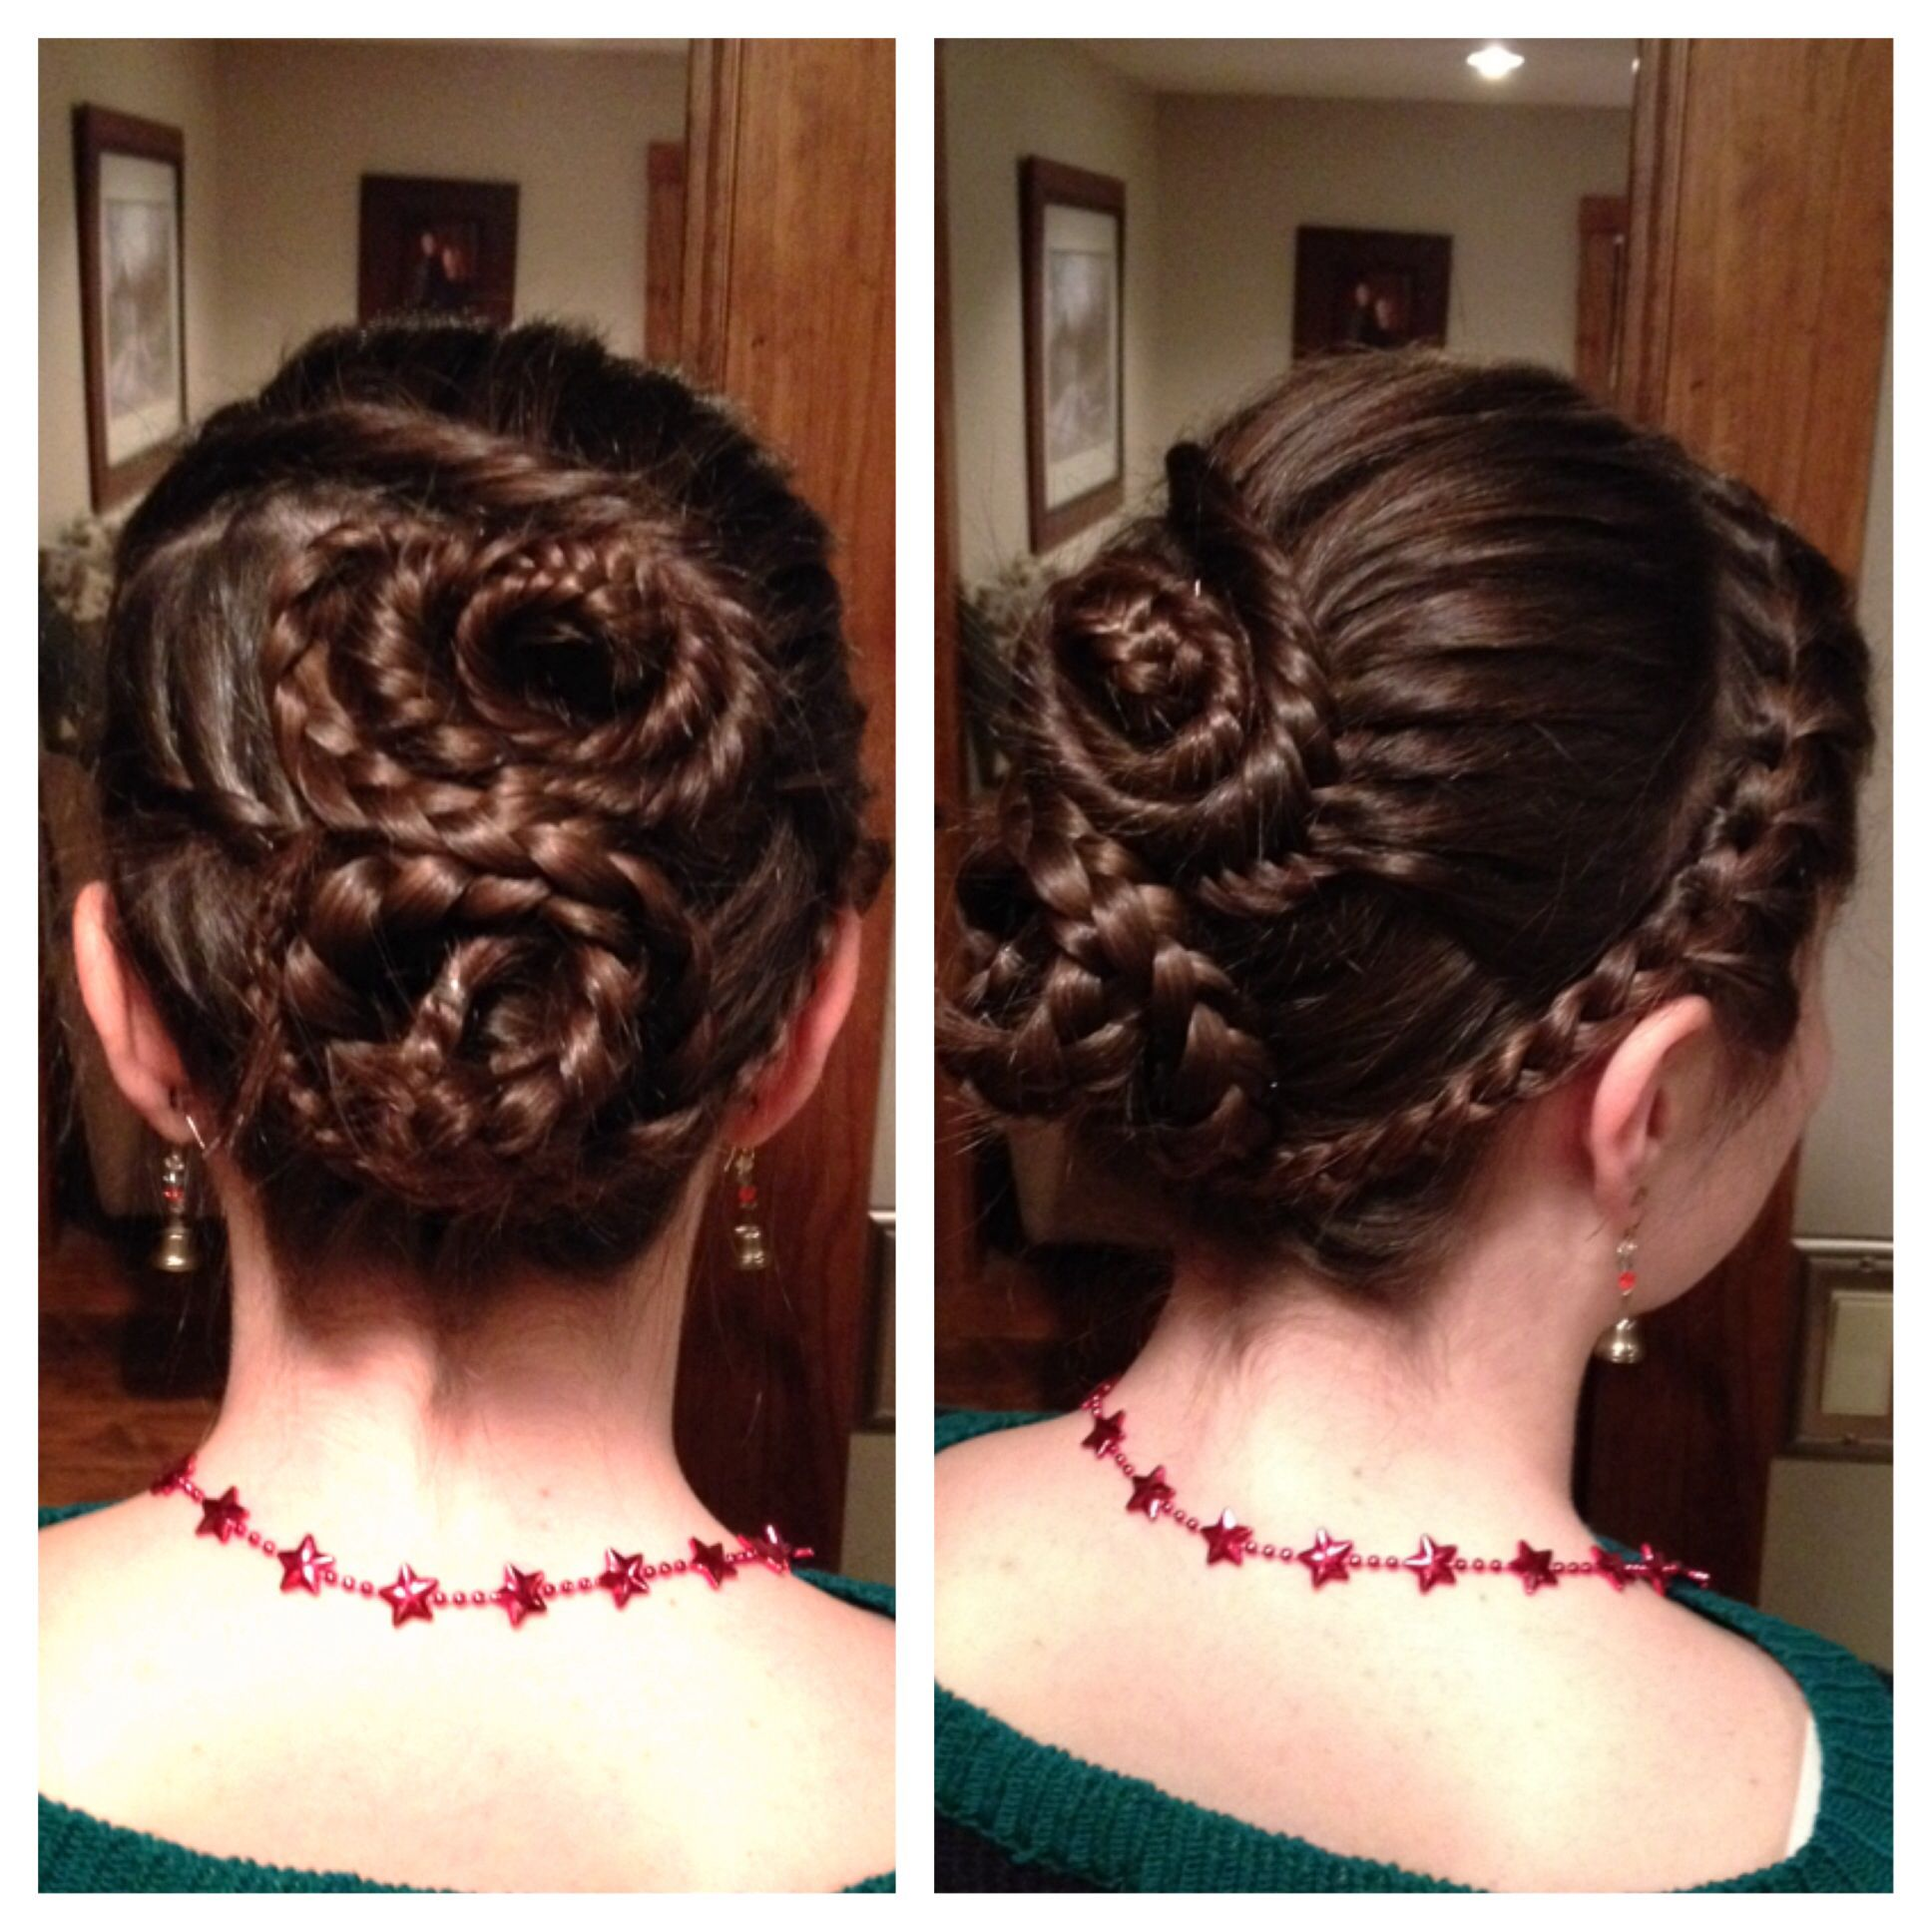 Intricate Wedding Hair Up Do: Intricate But Easy Updo. Lace Braids: Fishtail And